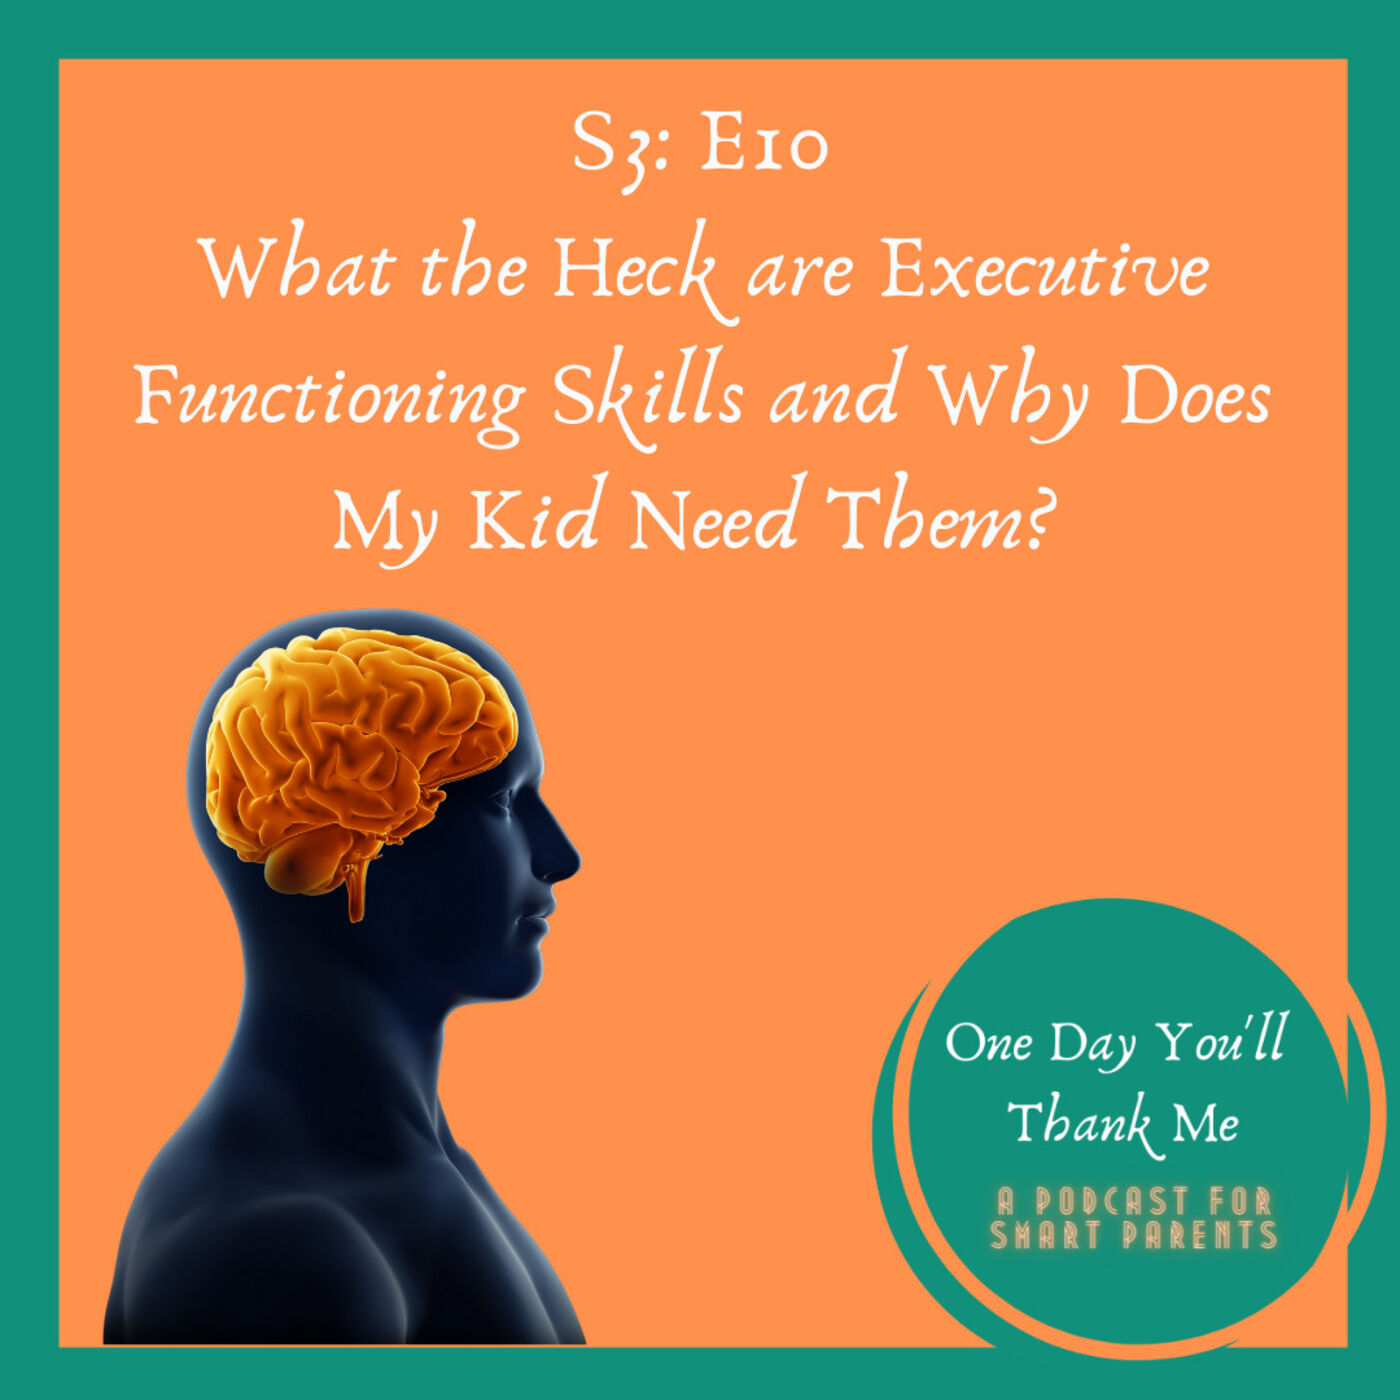 S3: E10 - What Are Executive Functioning Skills and Why Does My Kid Need Them?